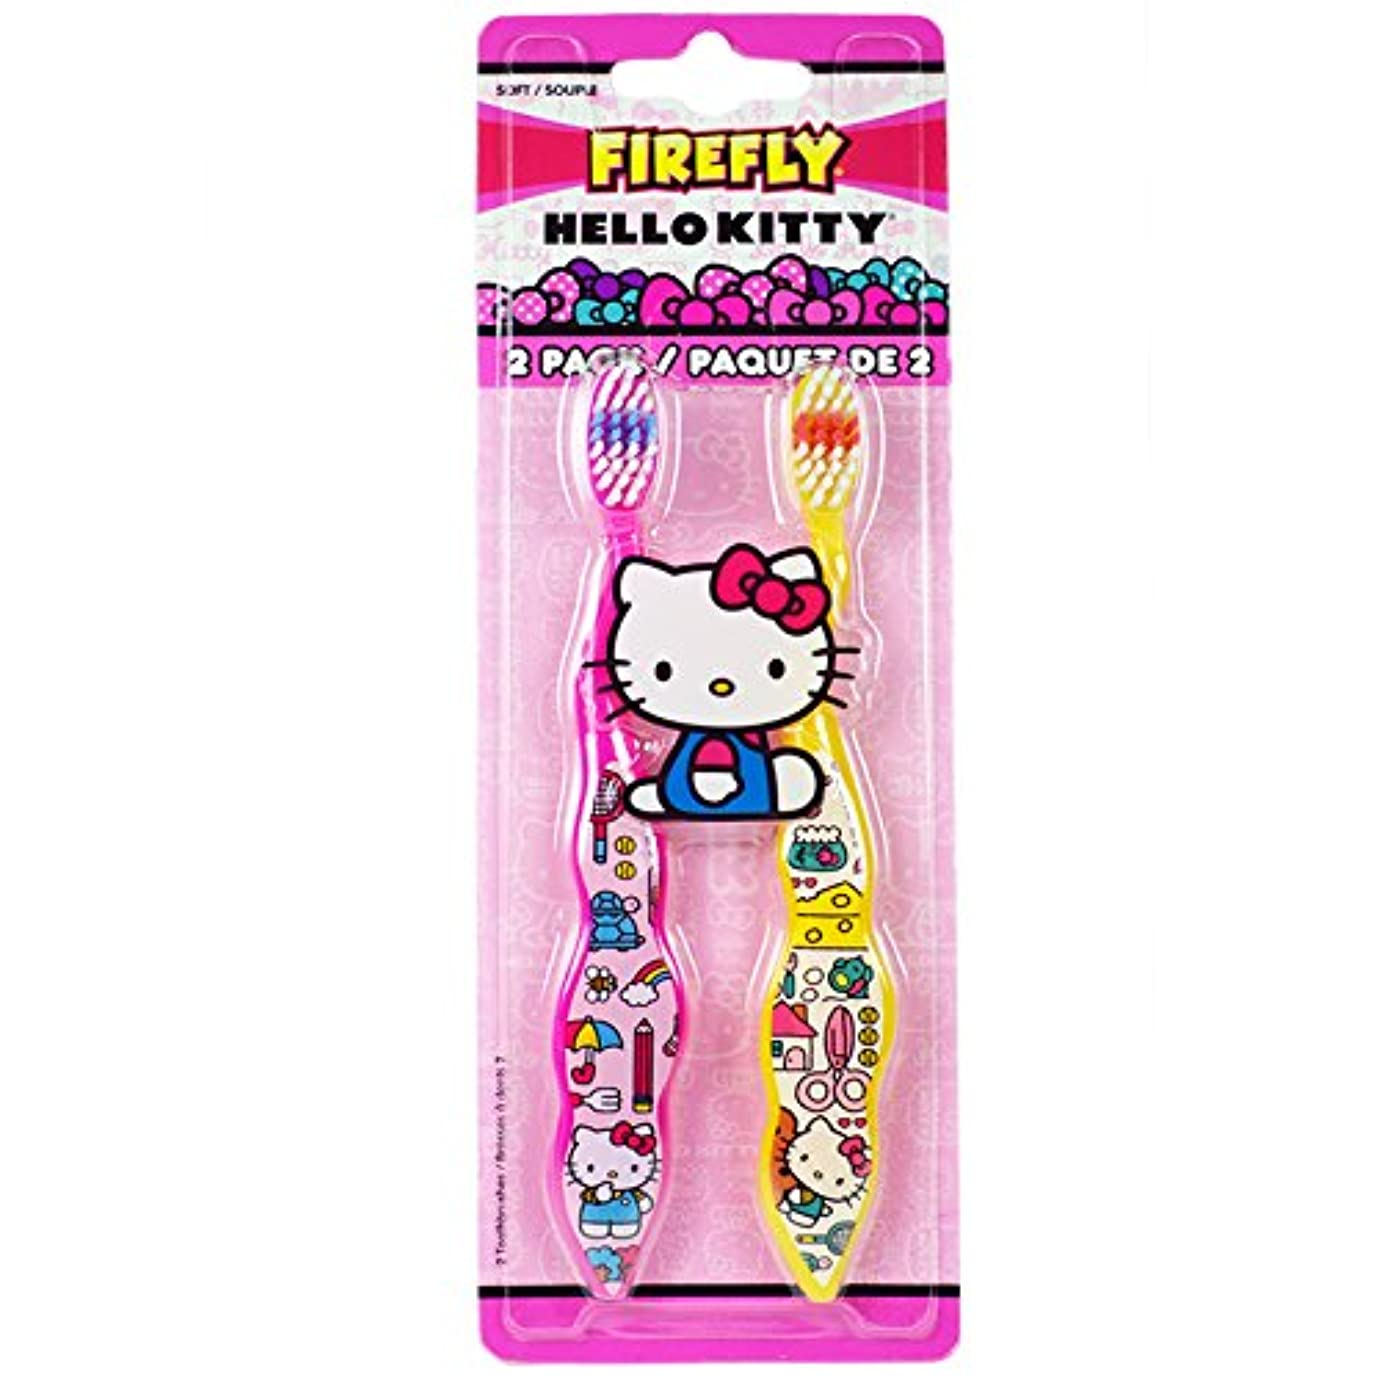 実験室スペード我慢するDr. Fresh Firefly Hello Kitty Toothbrush, Soft by Firefly